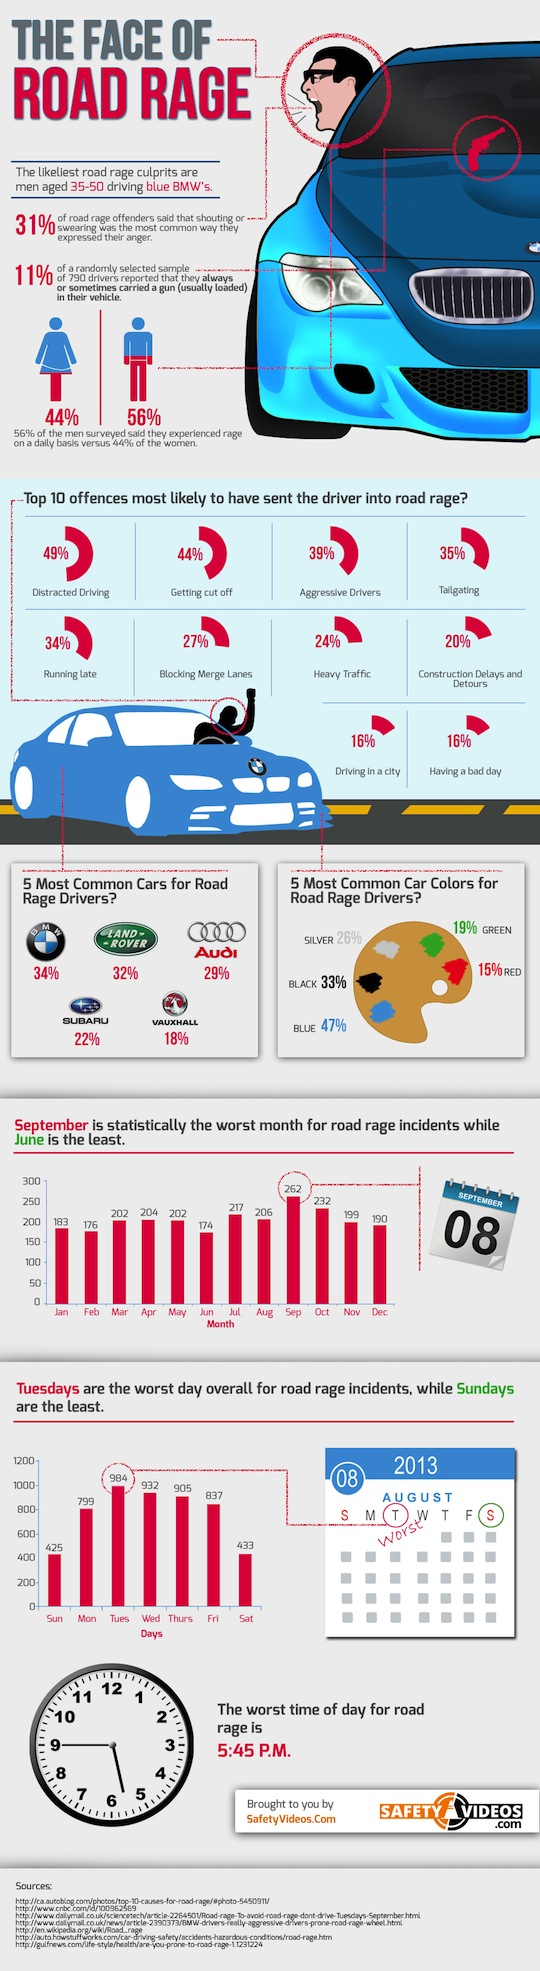 road rage statistics, driver safety, driver resources, automobile safety